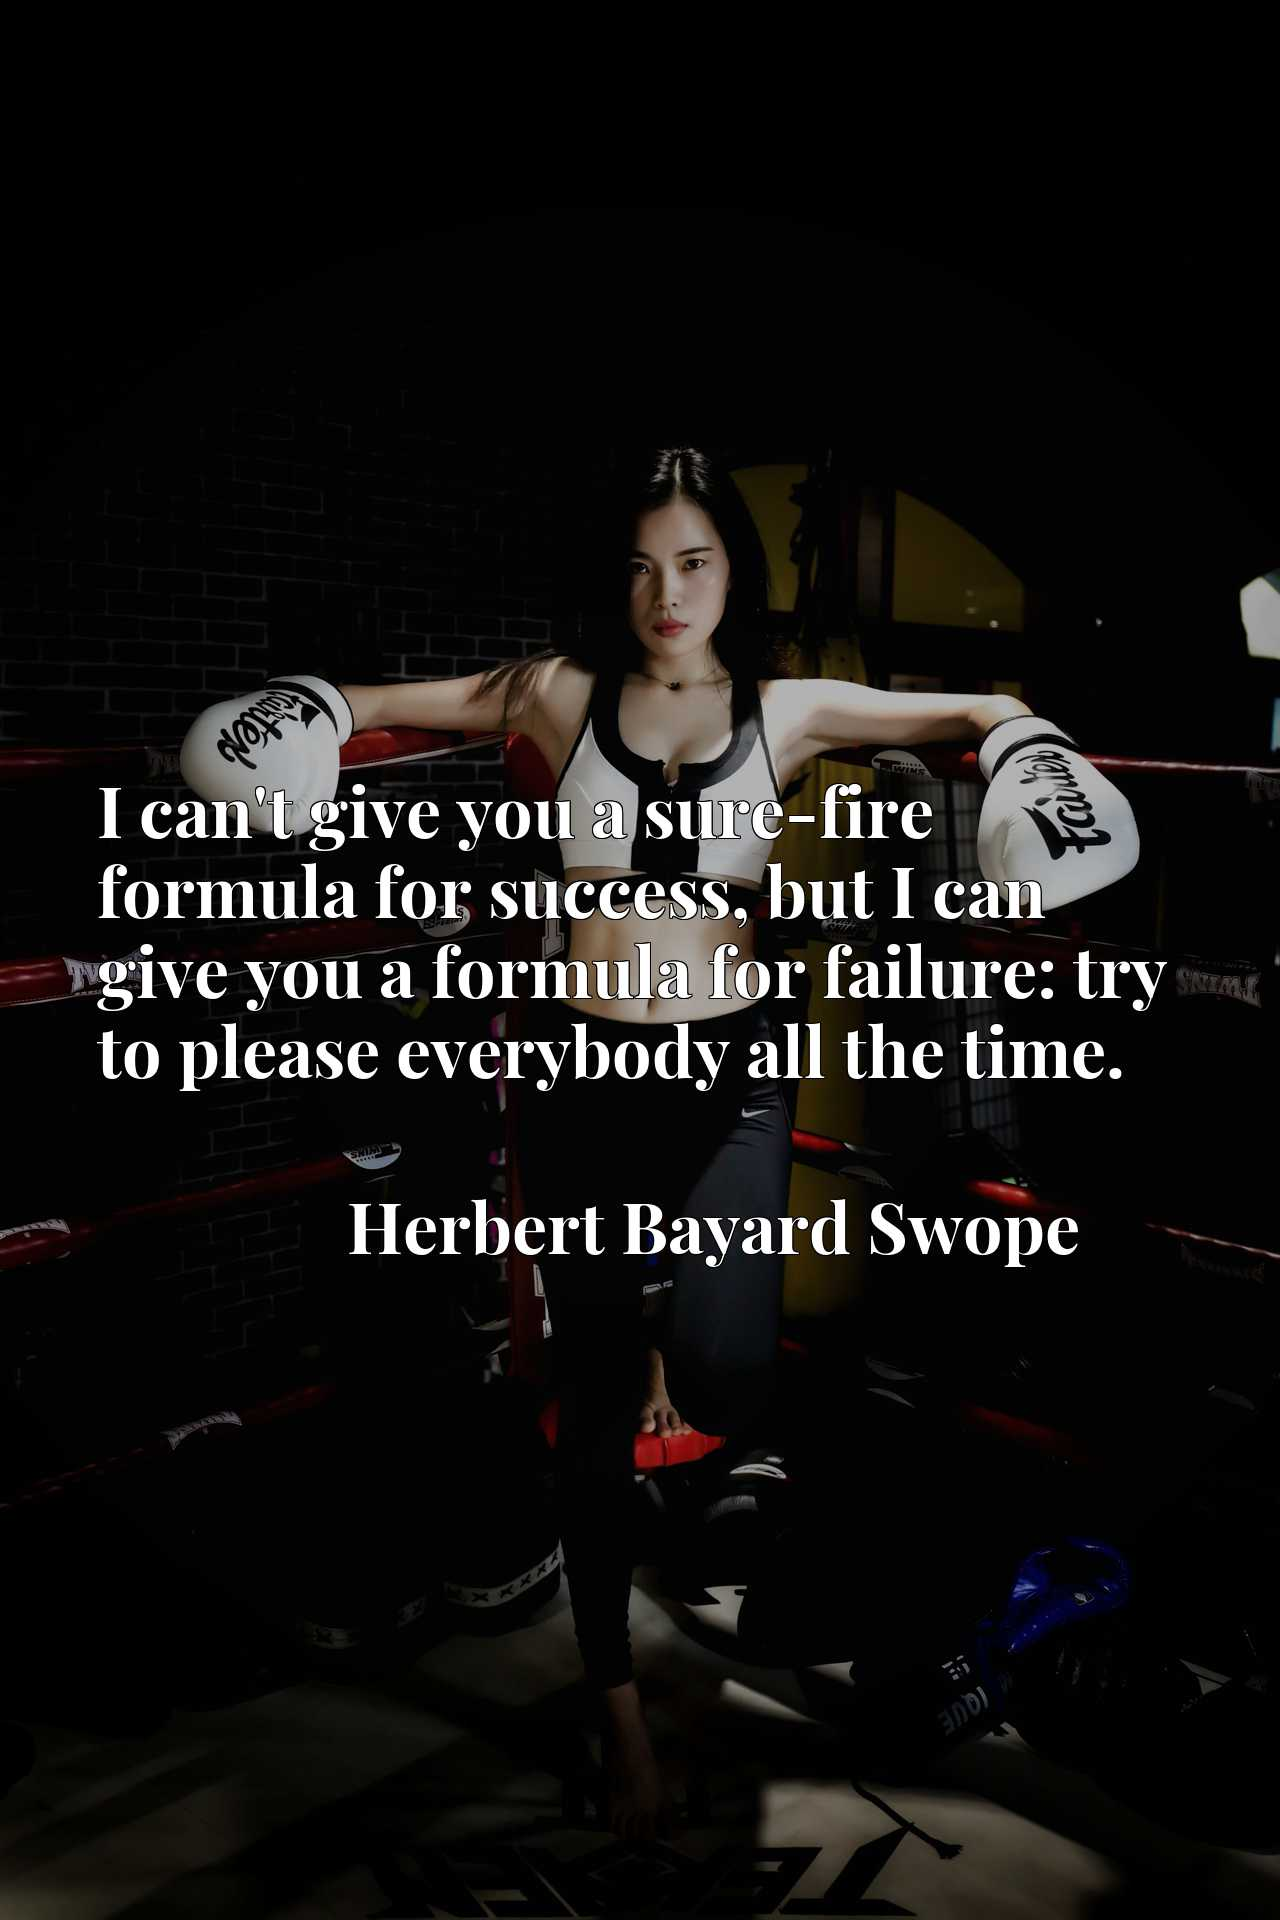 I can't give you a sure-fire formula for success, but I can give you a formula for failure: try to please everybody all the time.